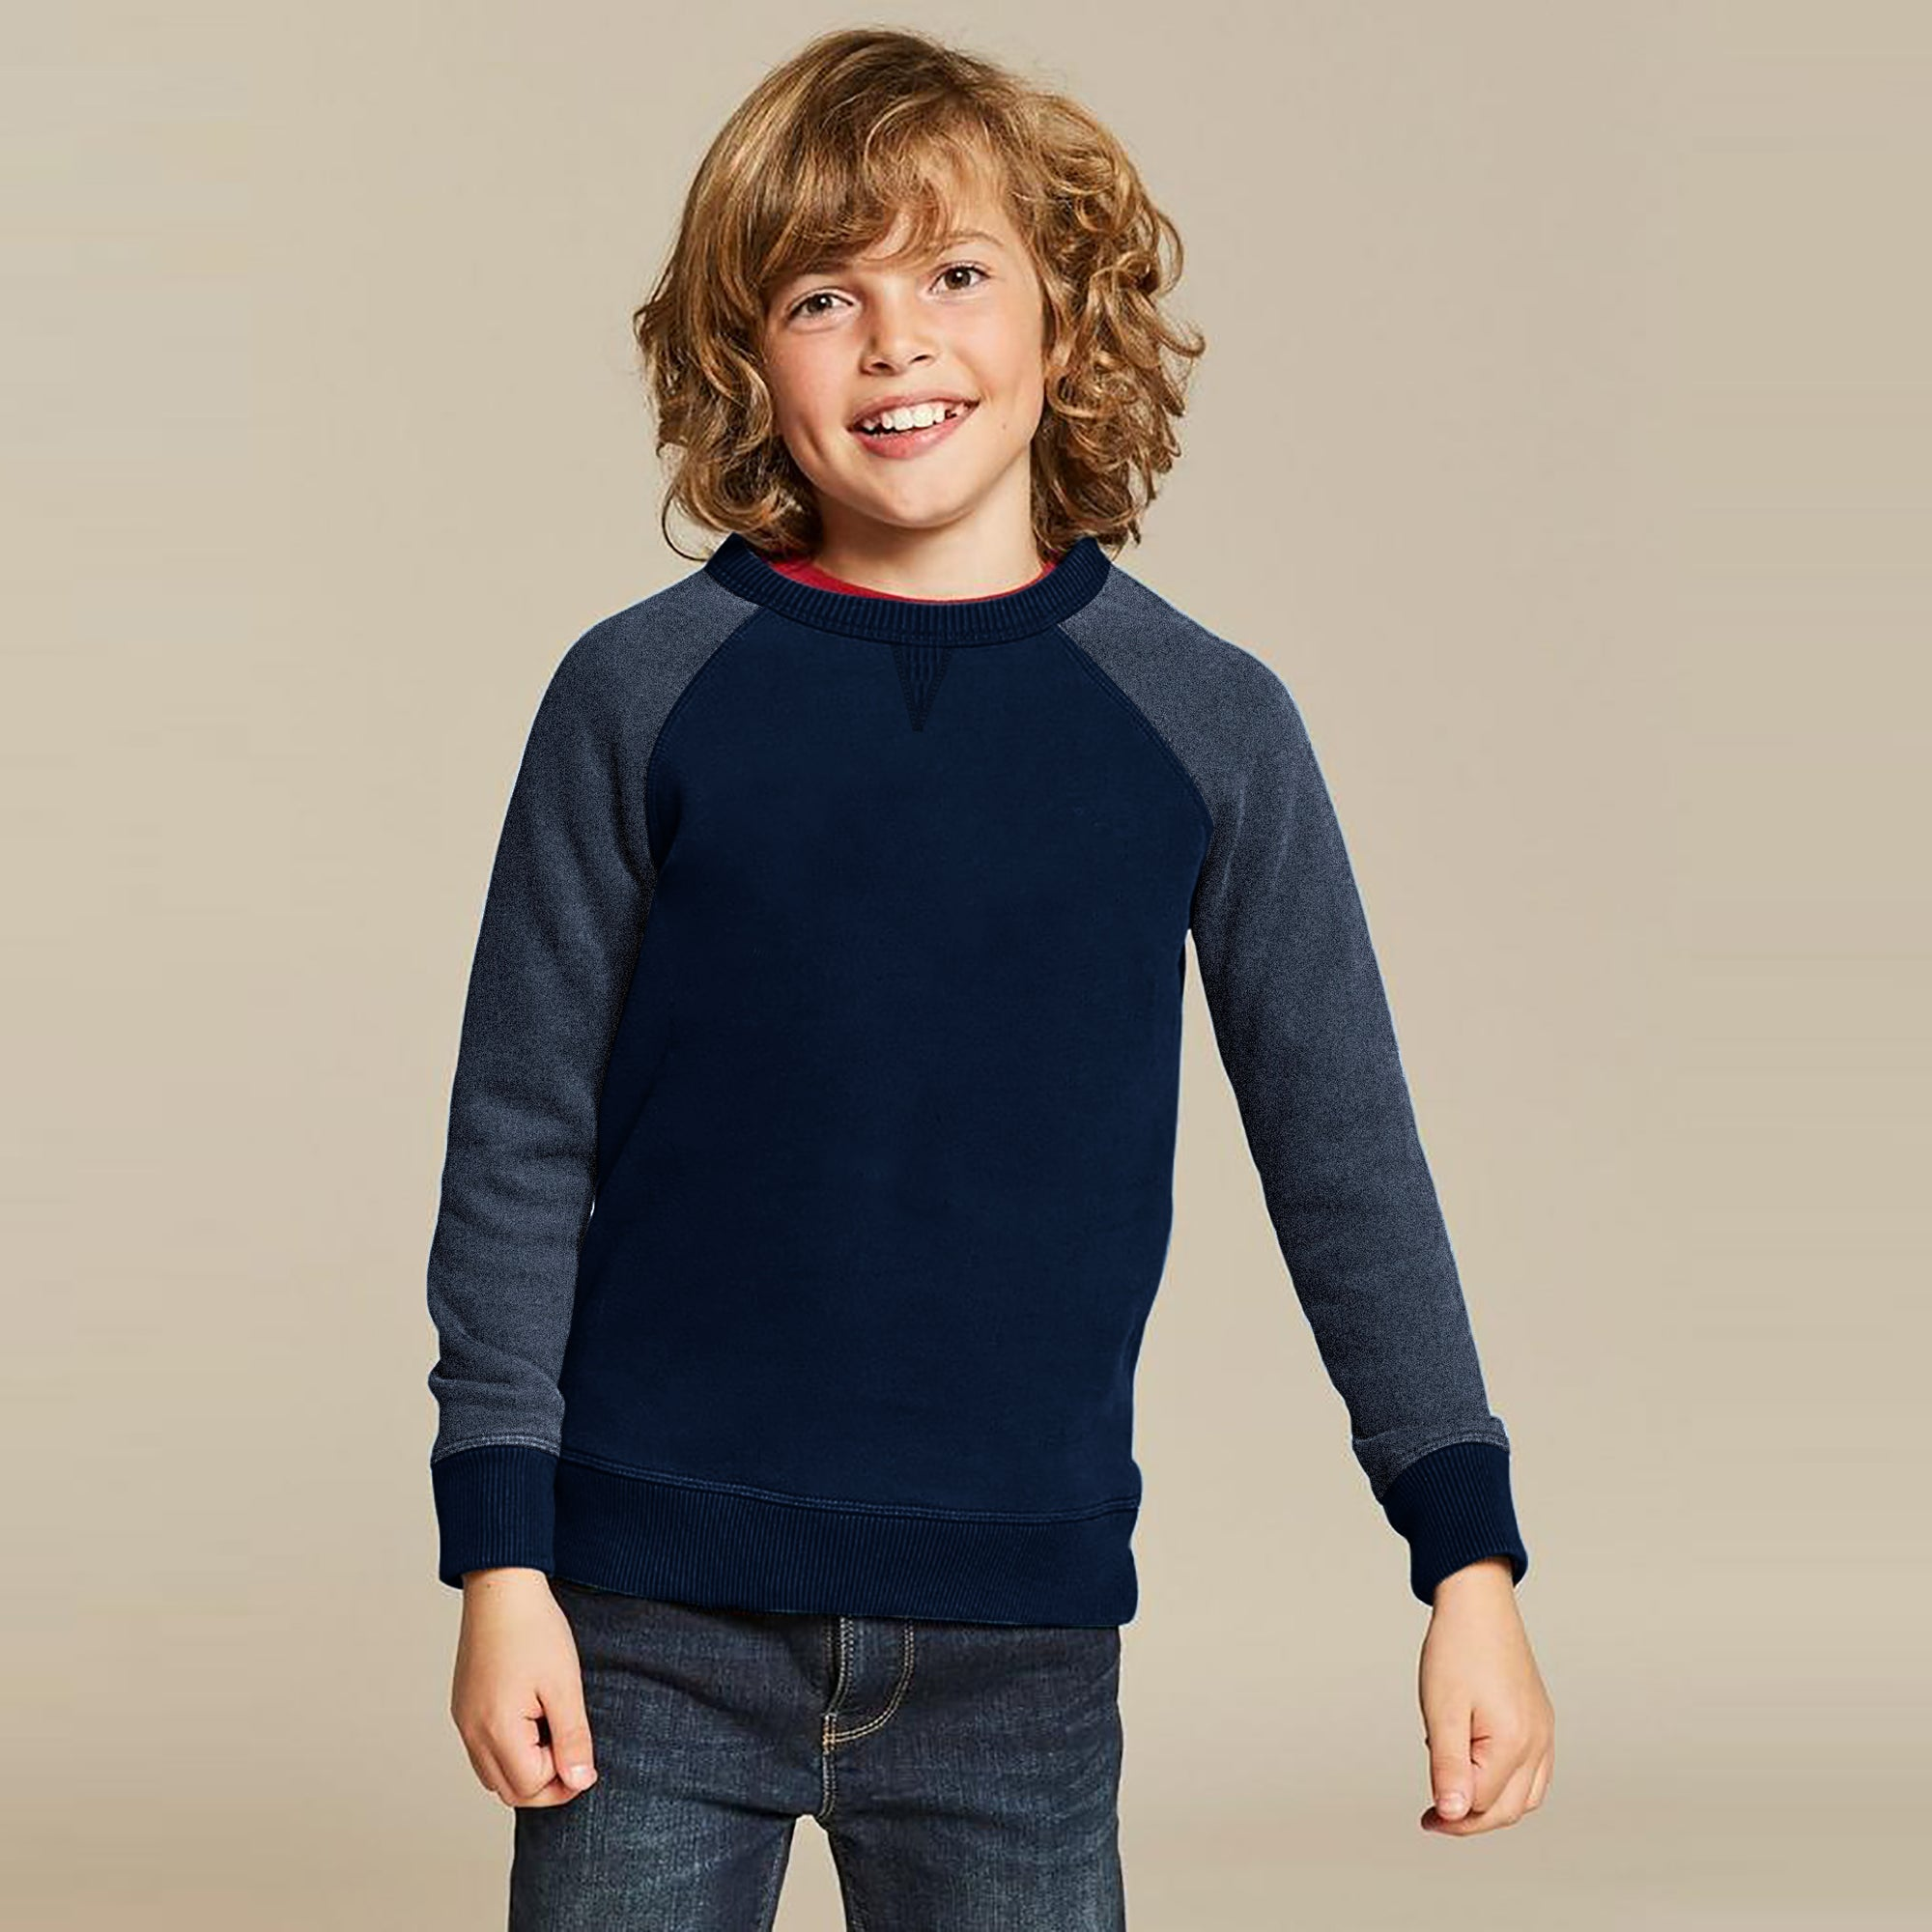 Next Terry Fleece Crew Neck Raglan Sleeve Sweatshirt For Kids-Dark Navy-SP813